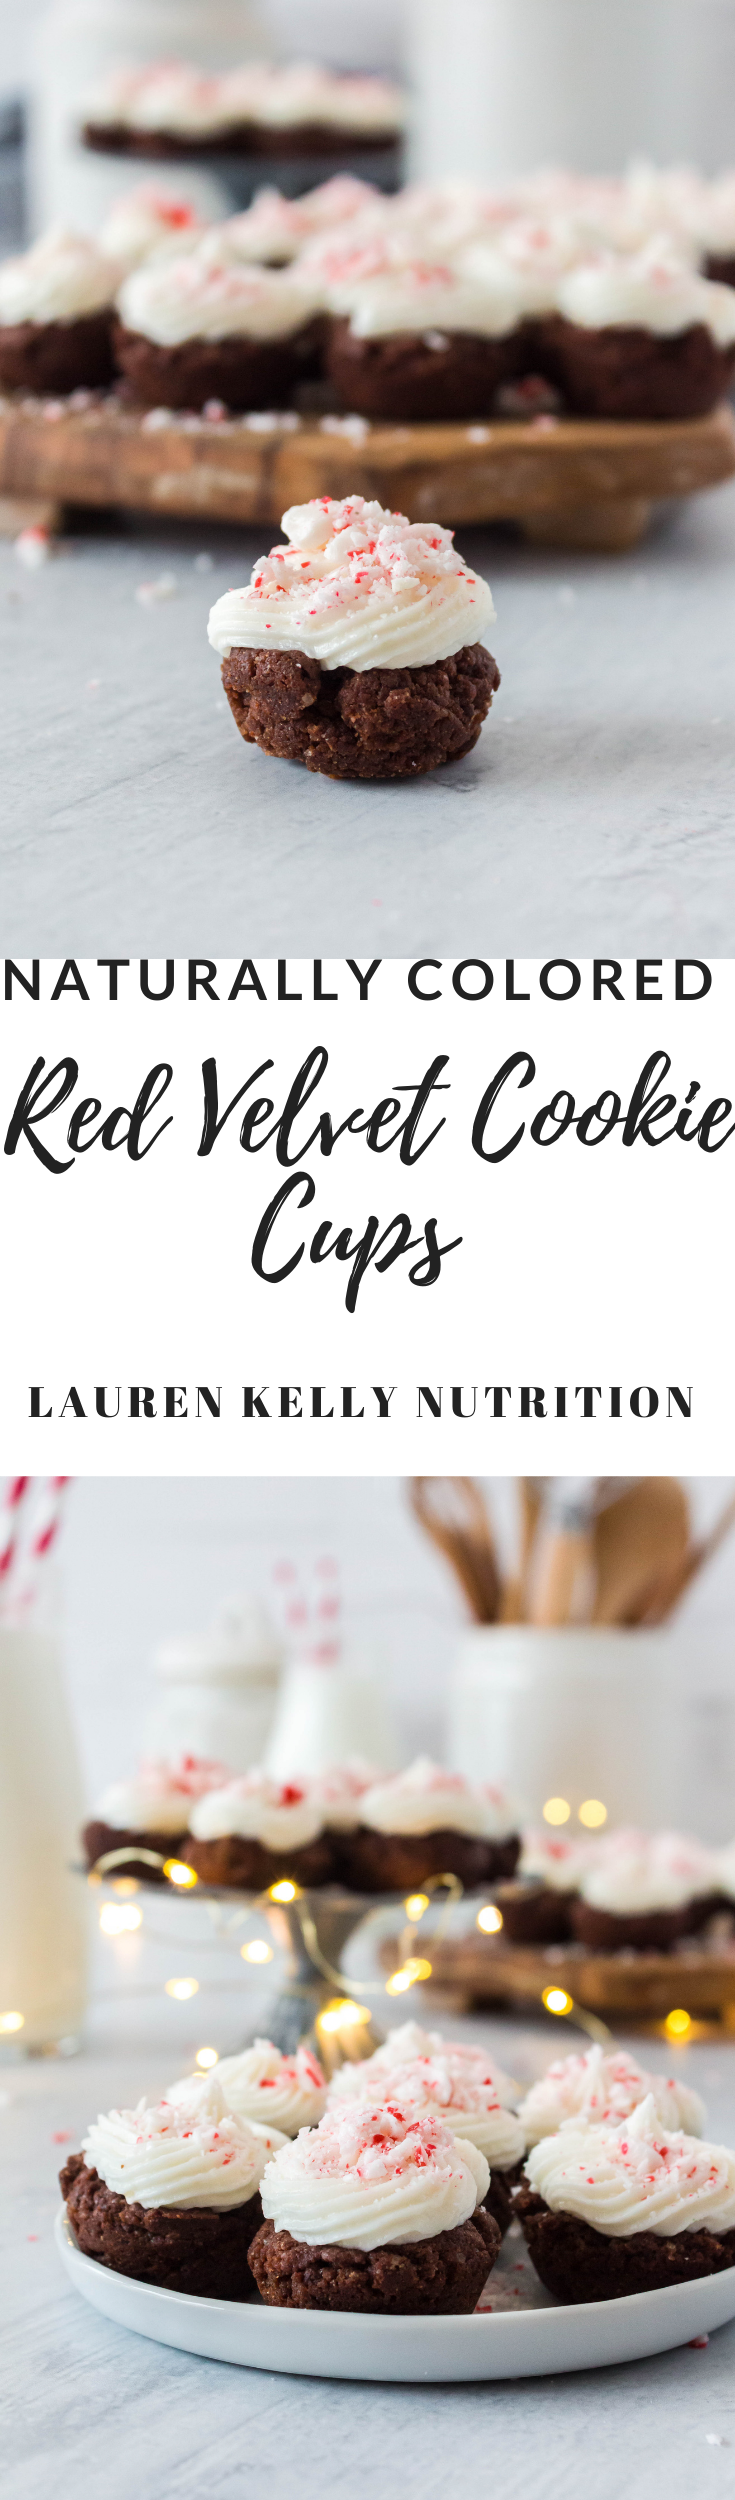 Naturally colored and super delicious, these Red Velvet Cookie Cups will be your new favorite holiday treat!